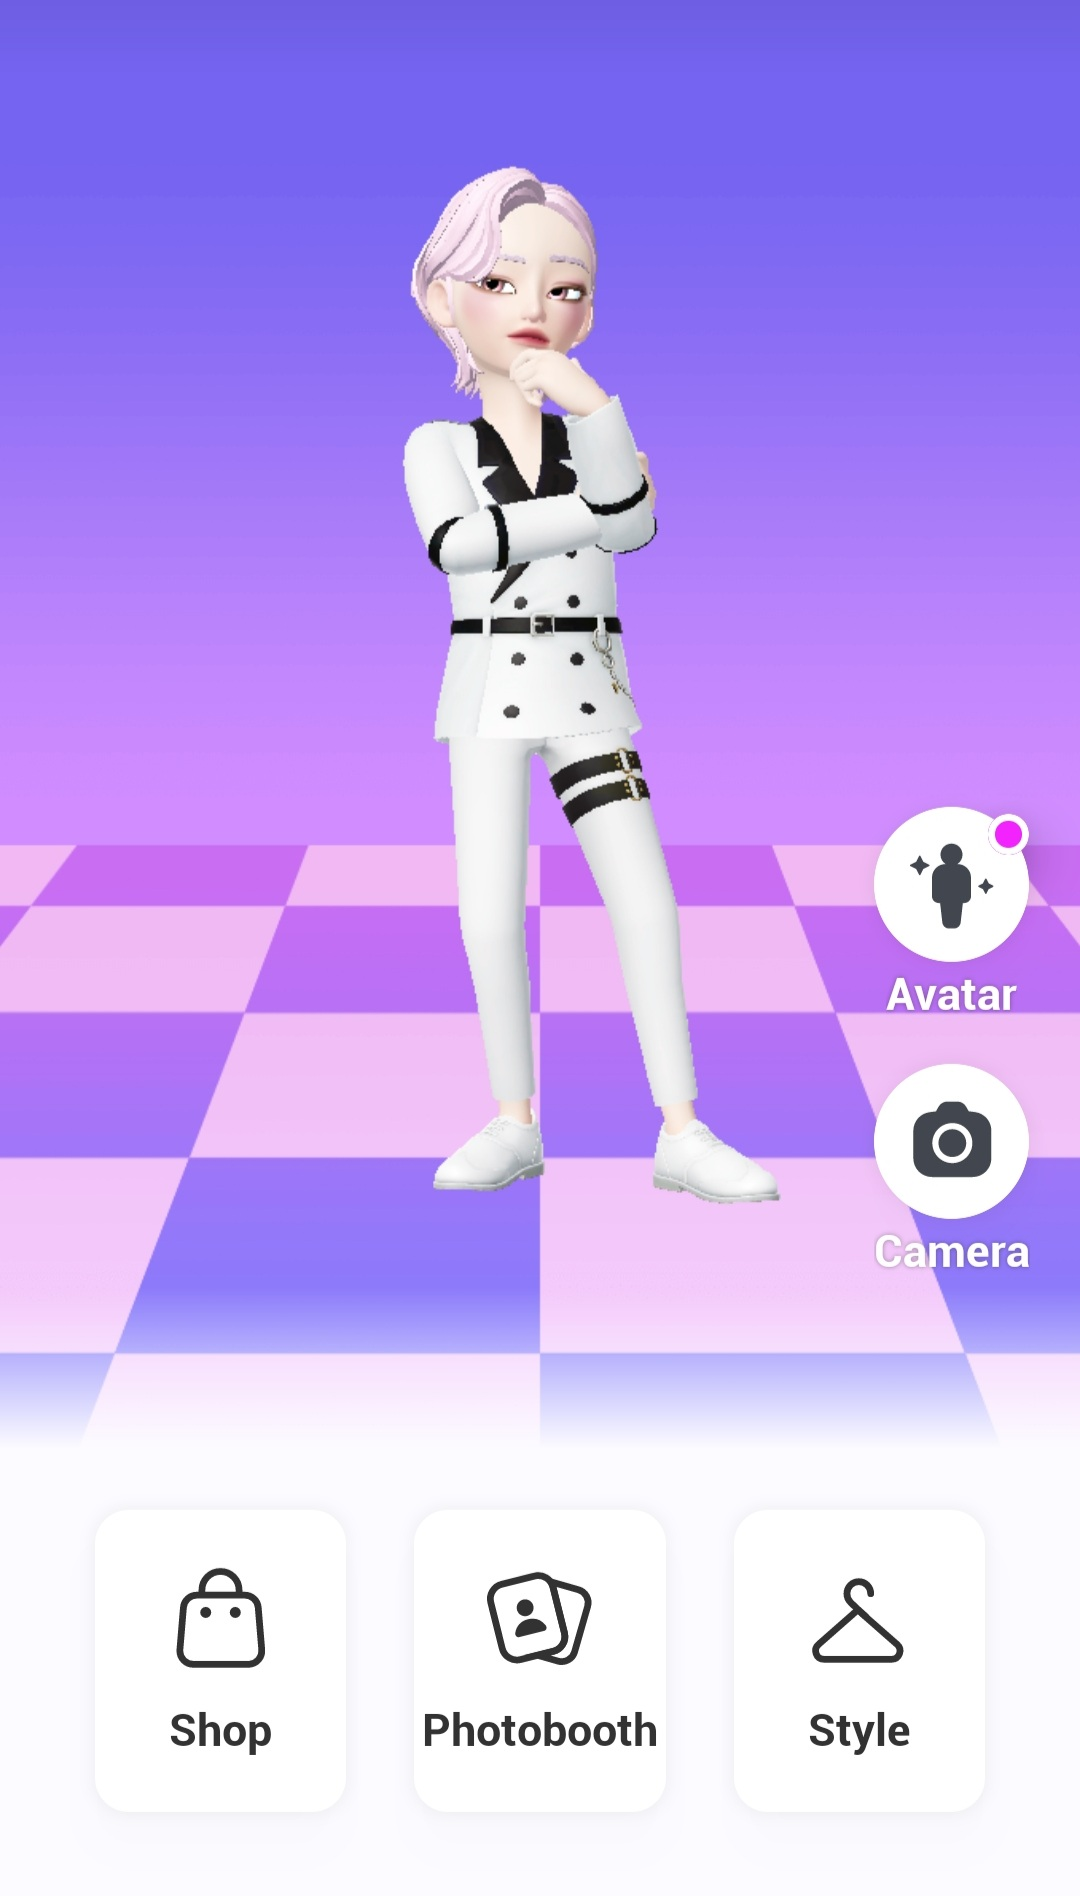 A character in Zepeto metaverse